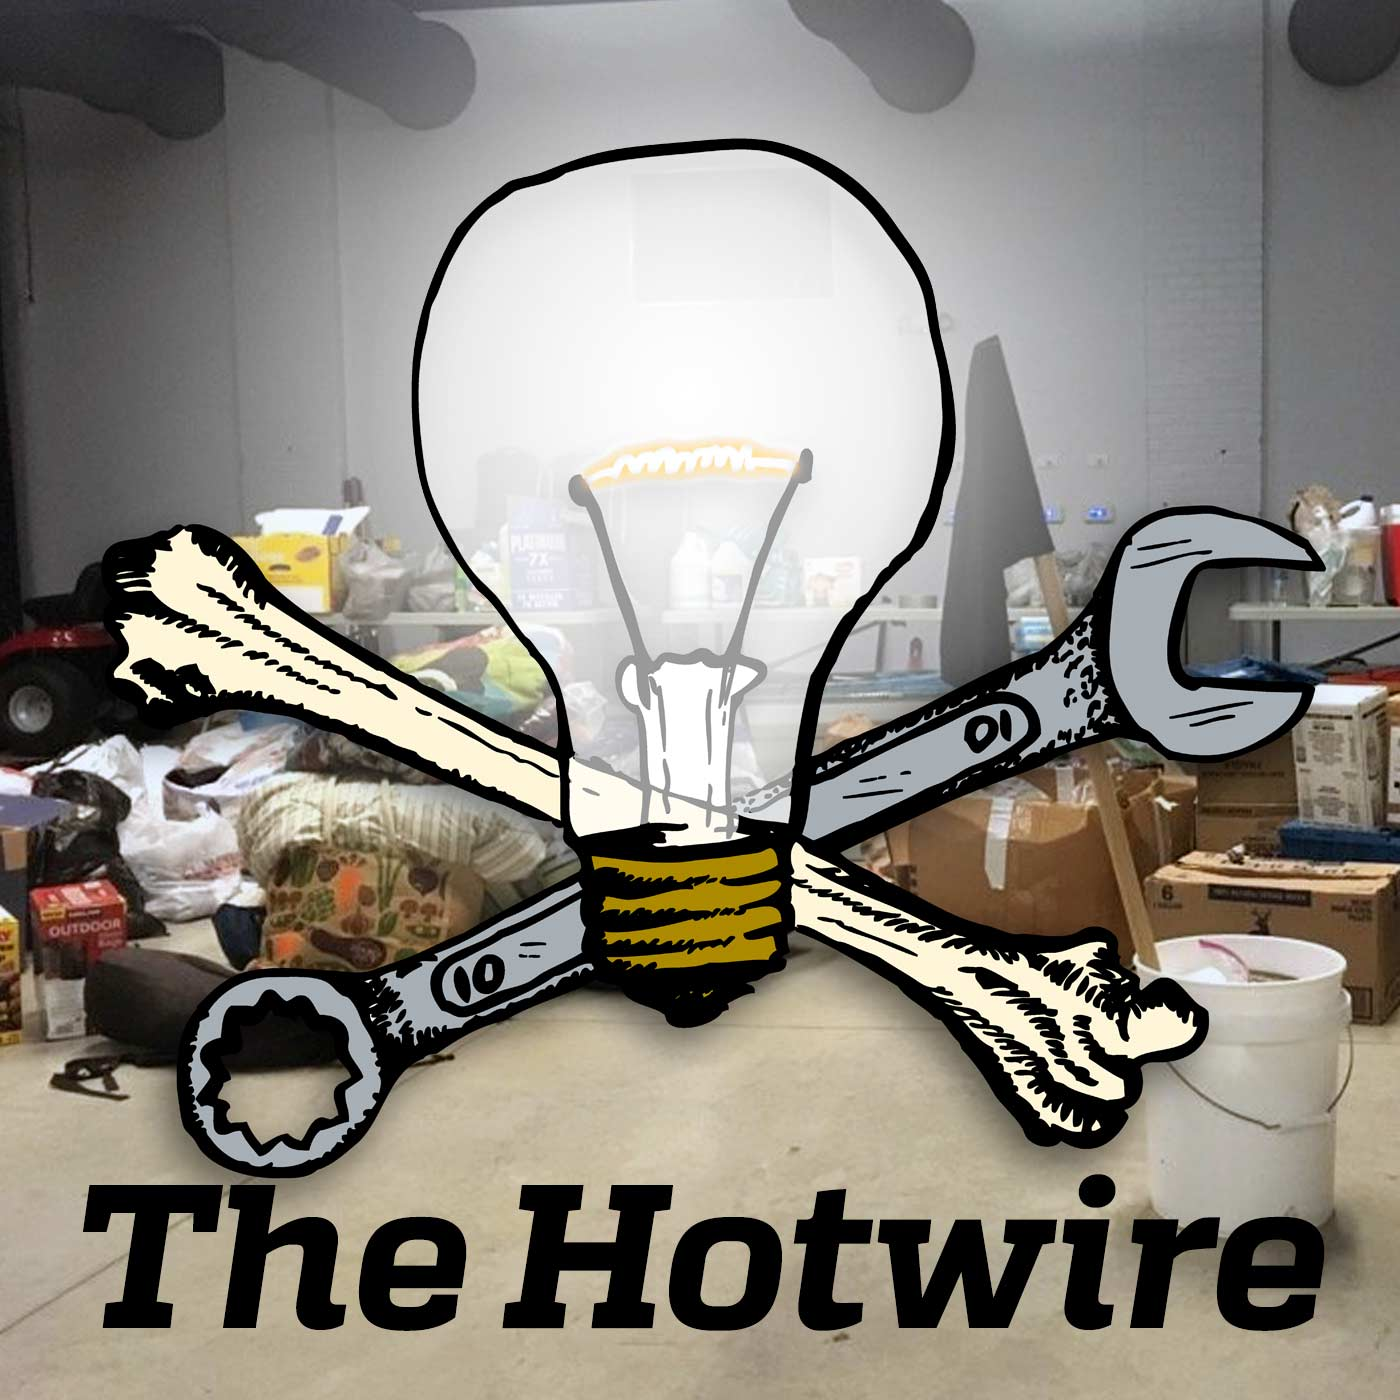 The Hotwire #37: September 19, 2018